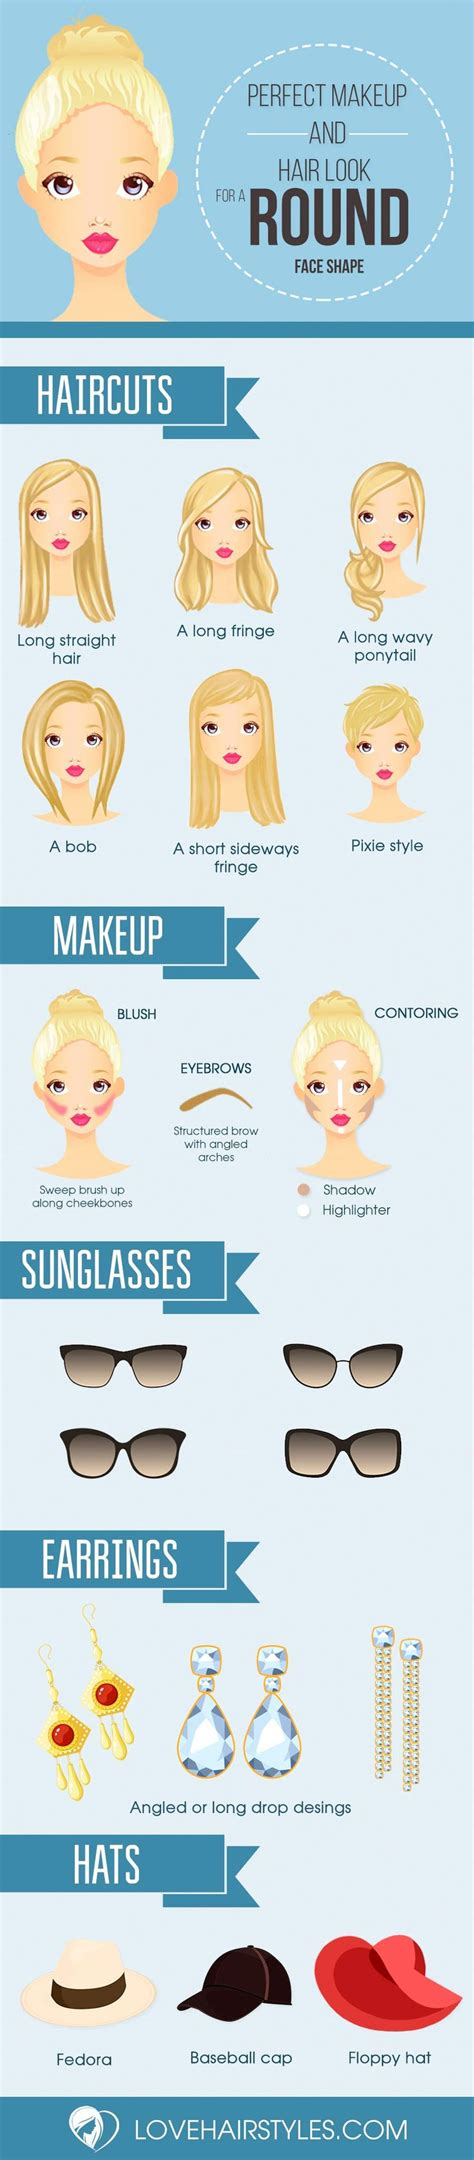 25 best ideas about round face shapes on pinterest